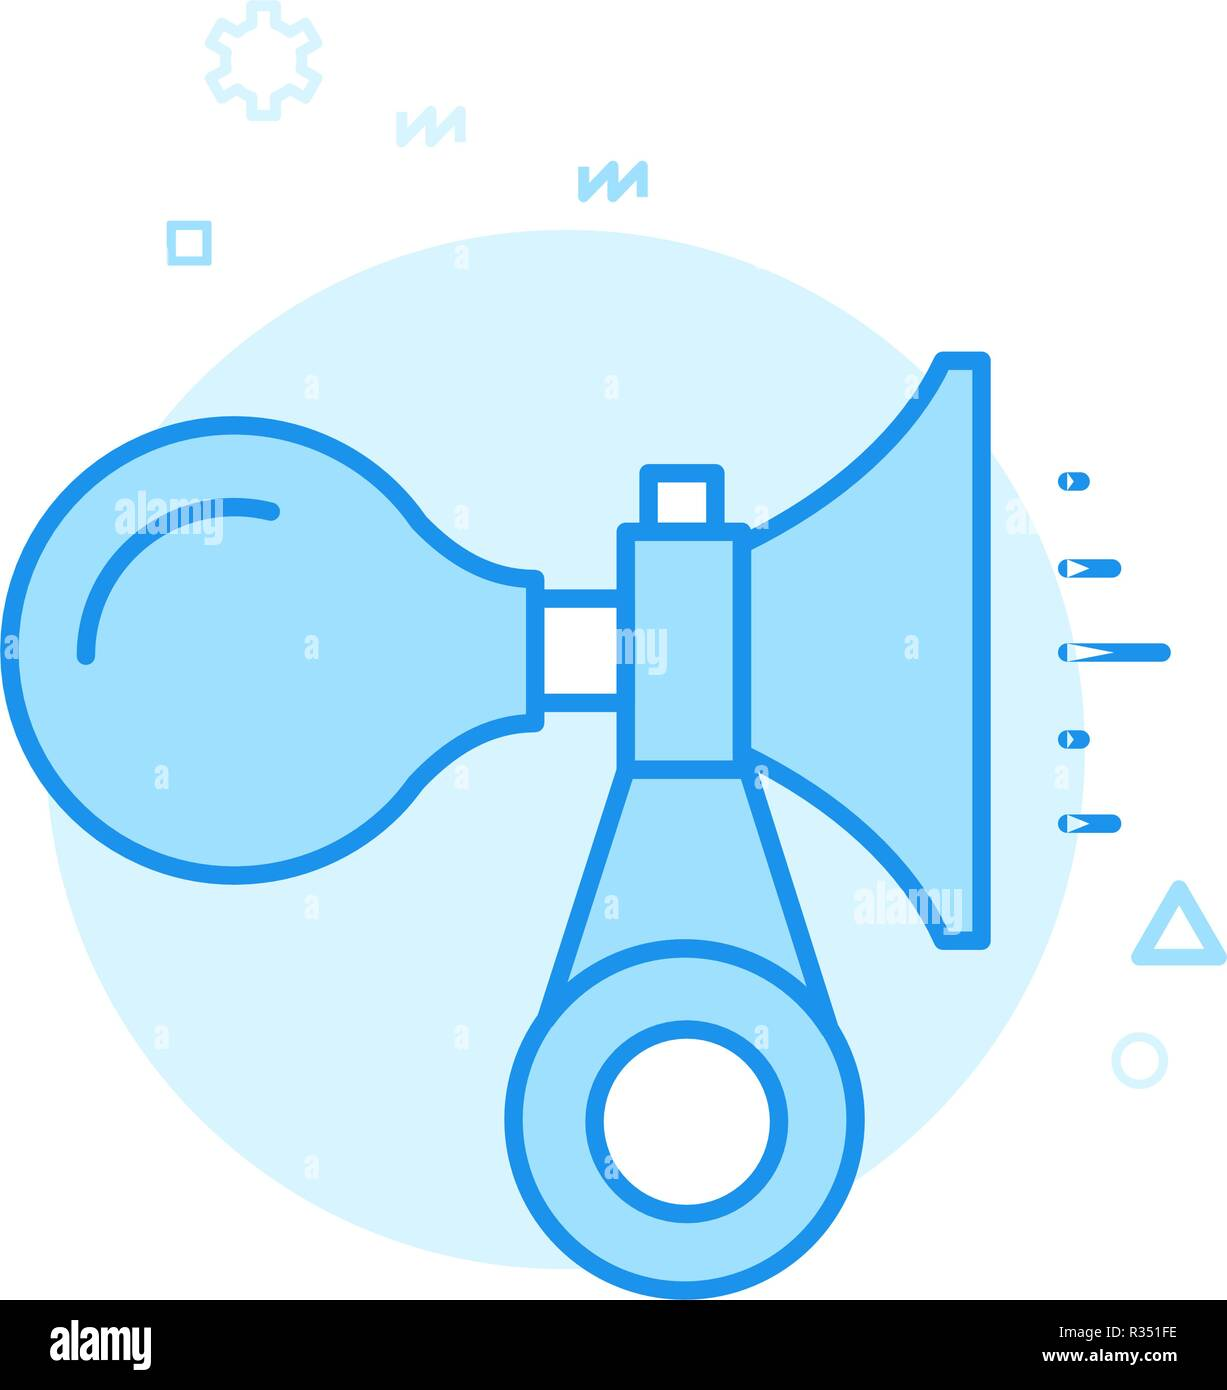 Bike or Bicycle Horn Flat Vector Icon, Symbol, Pictogram, Sign. Blue Monochrome Design. Editable Stroke - Stock Image